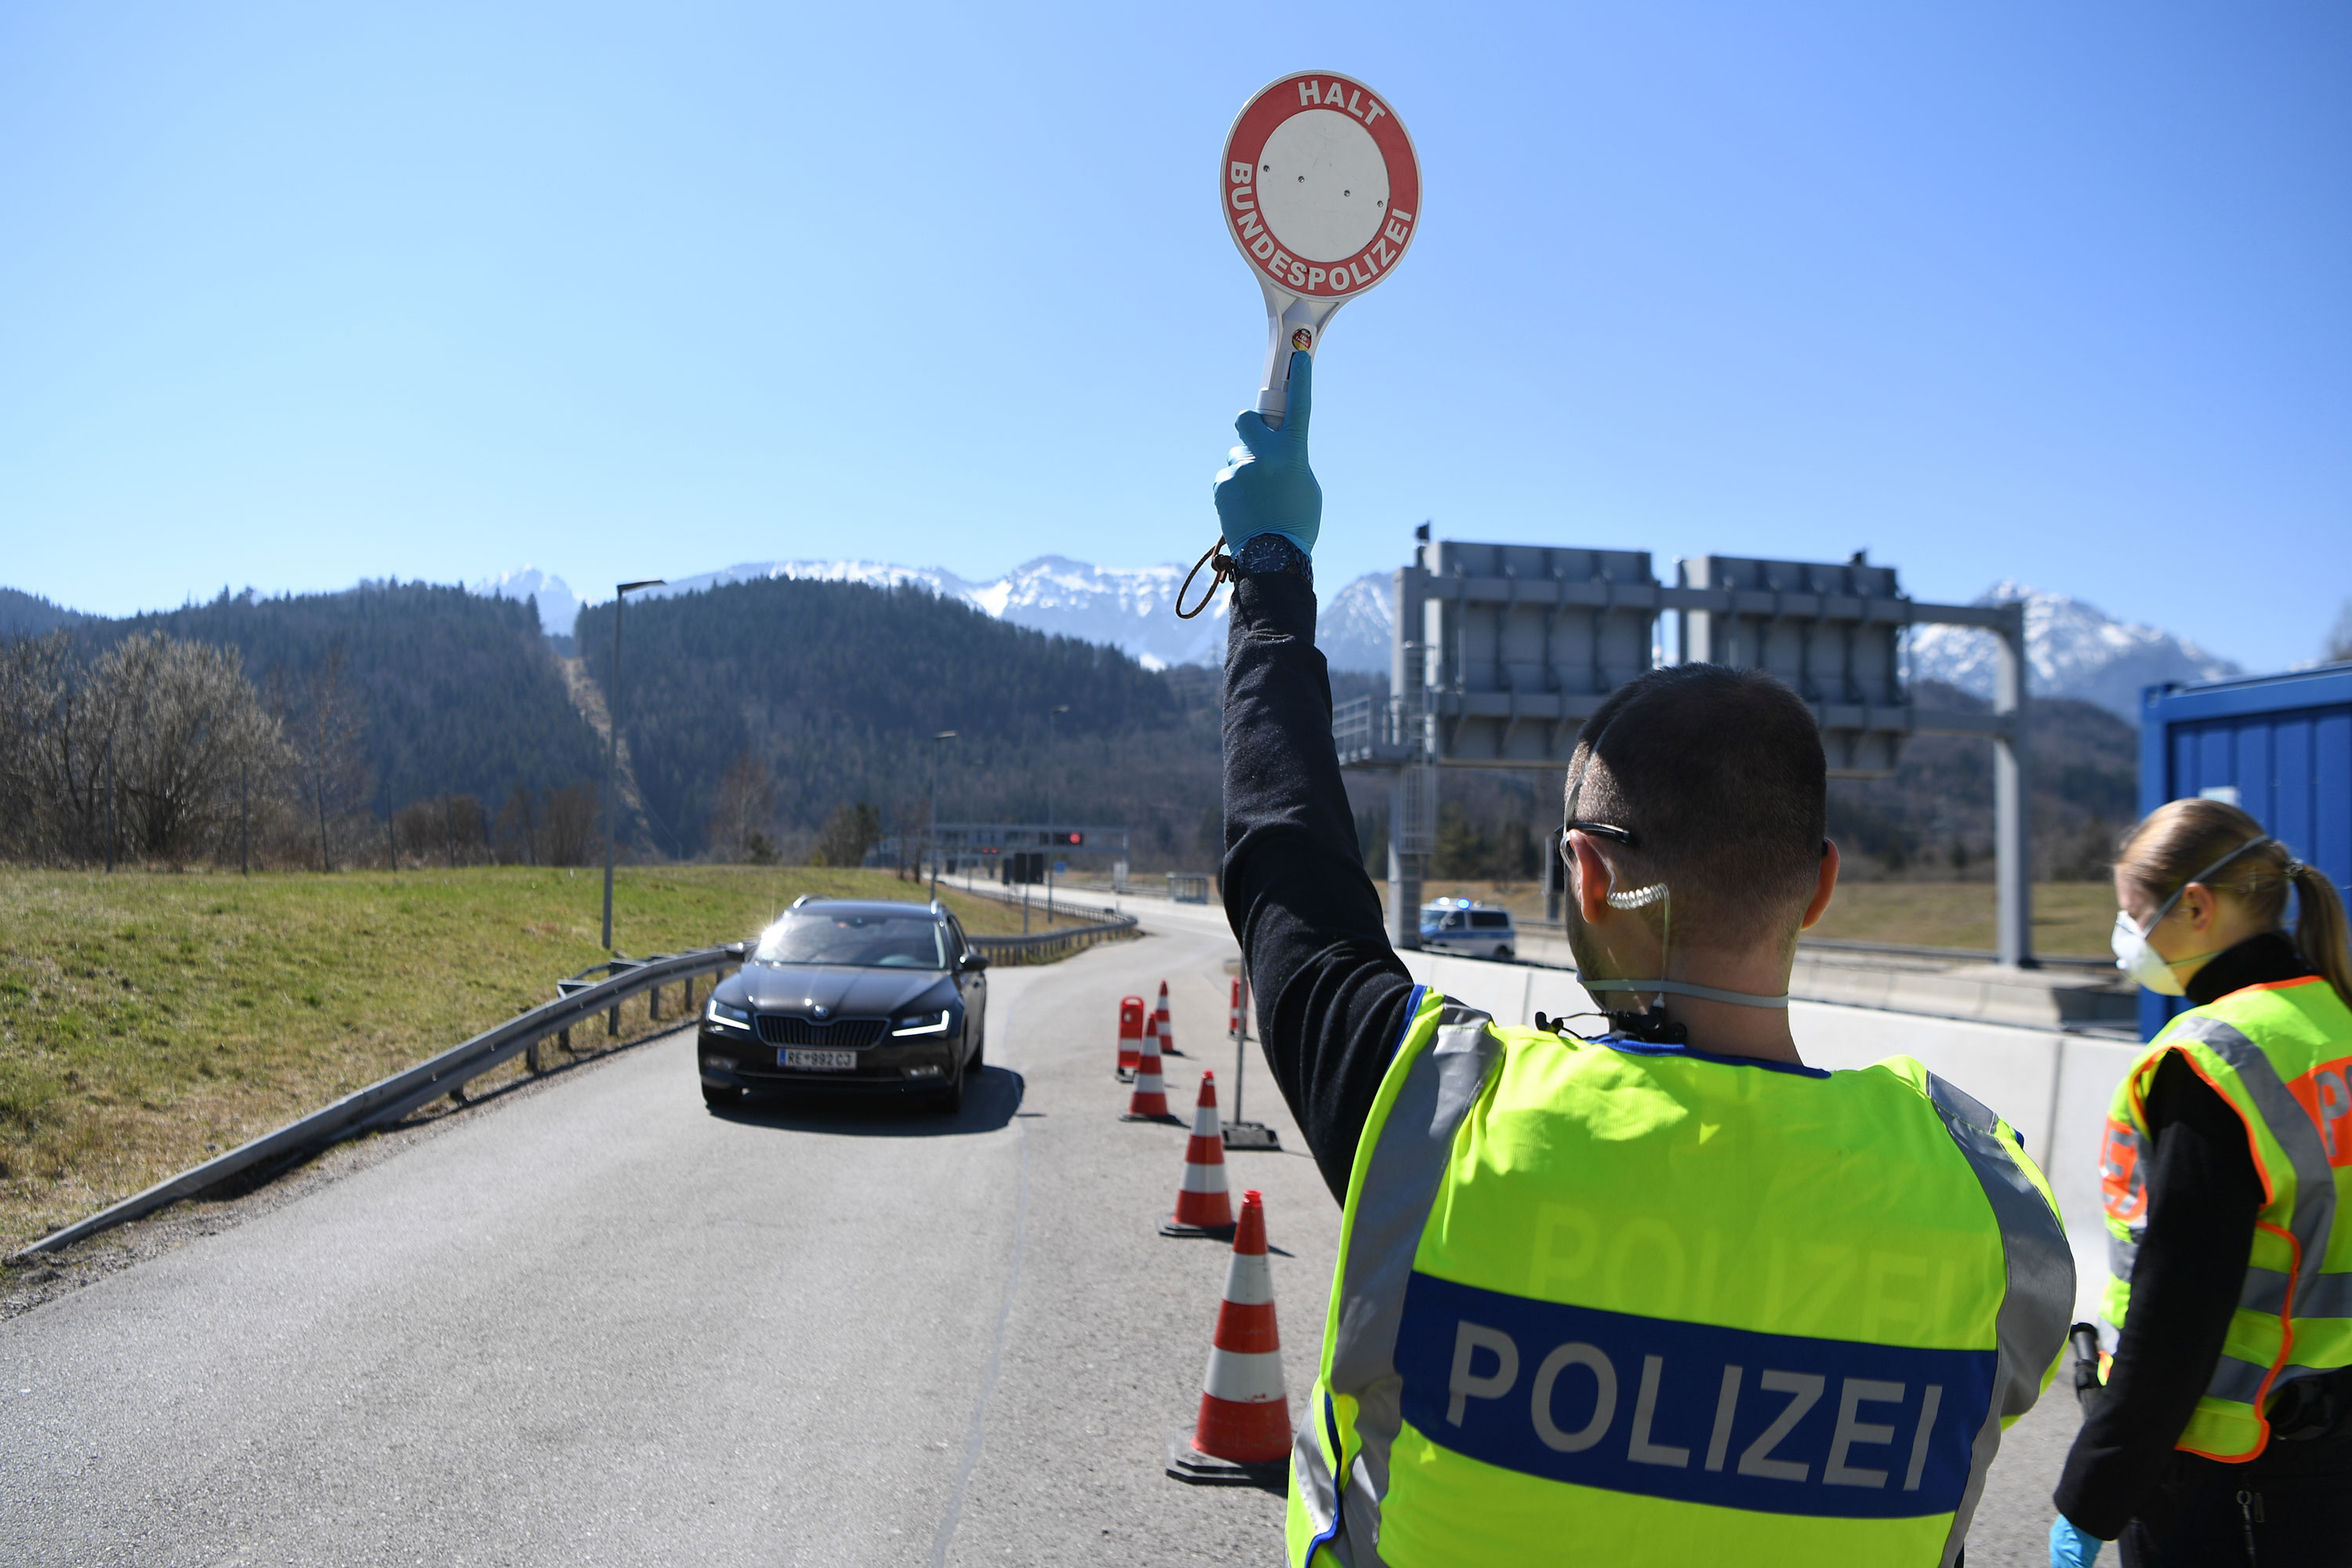 A German police officer stops a car at a checkpoint at the border to Austria near Fussen, Germany, on April 5.